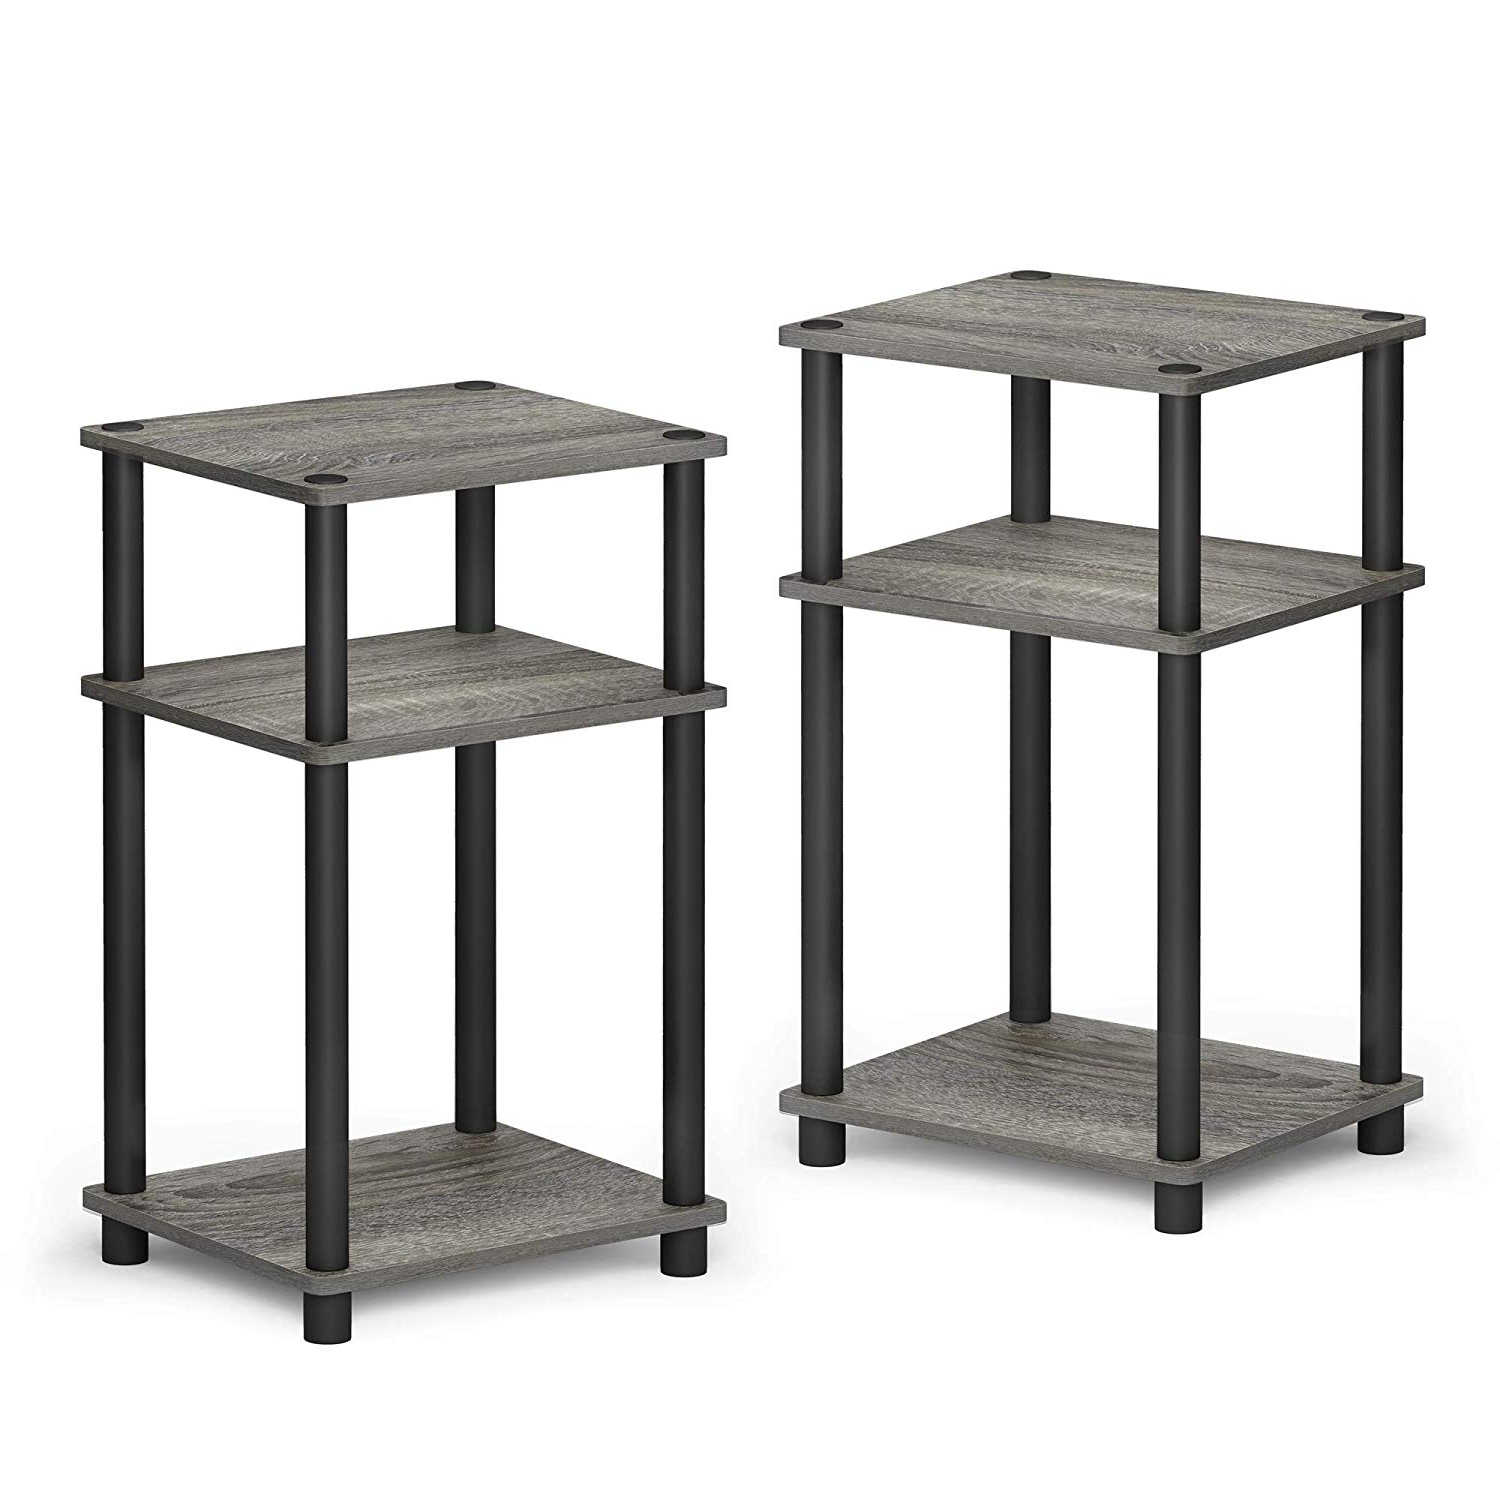 Most Recently Released Furinno Just 3 Tier Turn N Tube 2 Pack End Table, French Oak Grey/black In Acacia Dining Tables With Black Rocket Legs (Gallery 27 of 30)